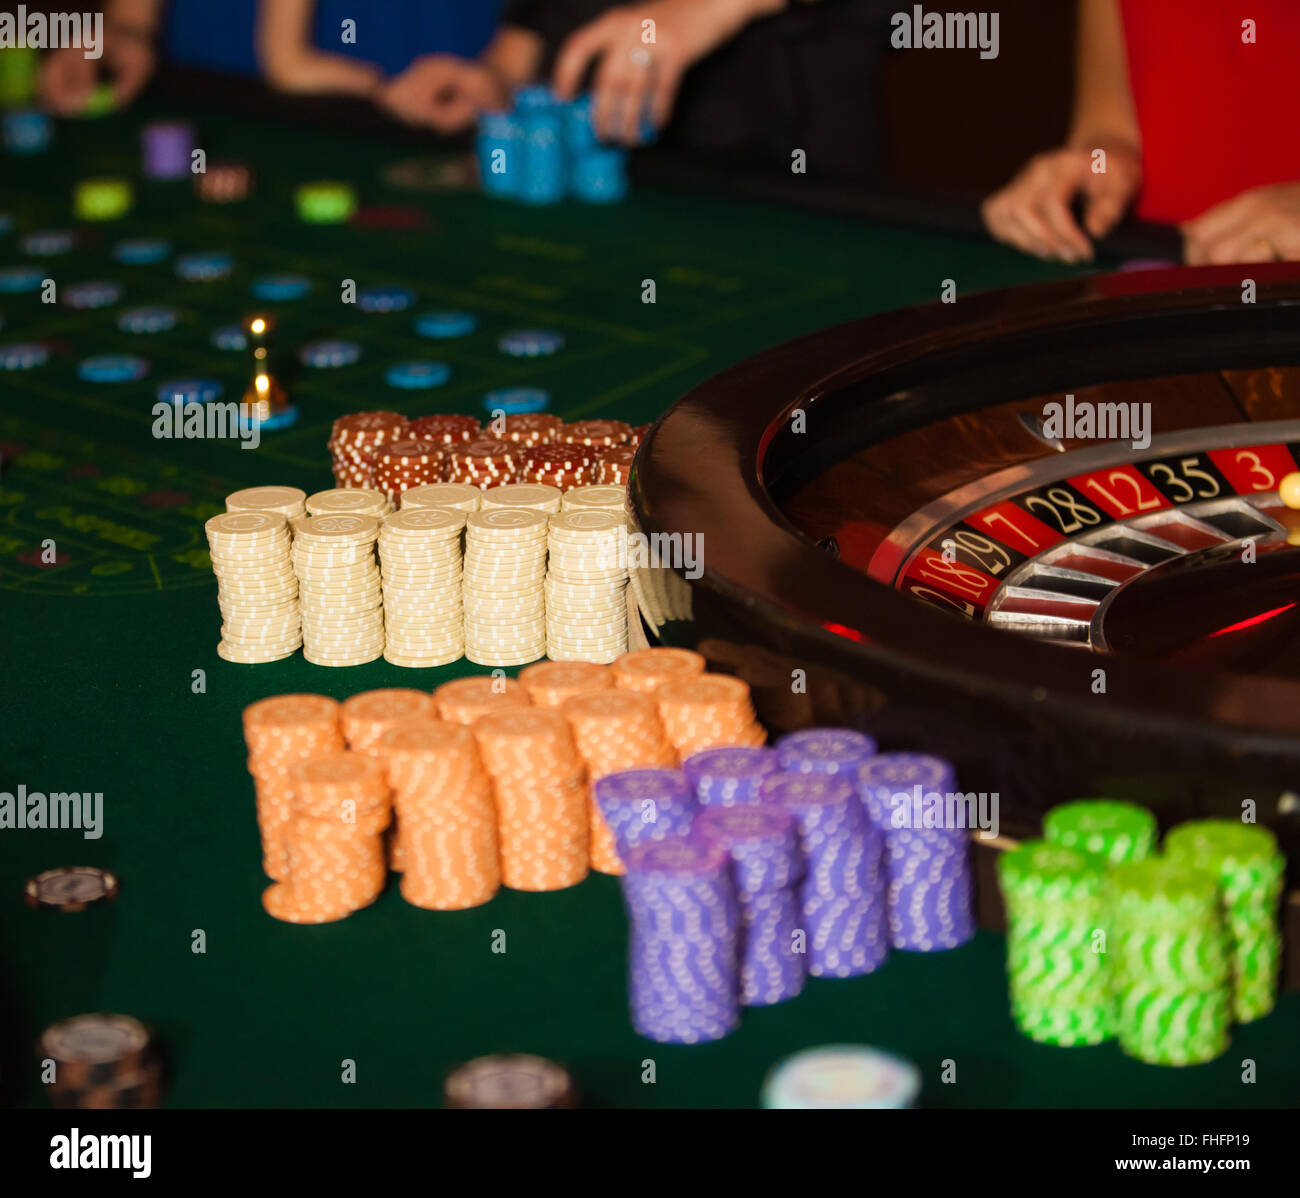 green roulette table with collored chips ready to play - Stock Image